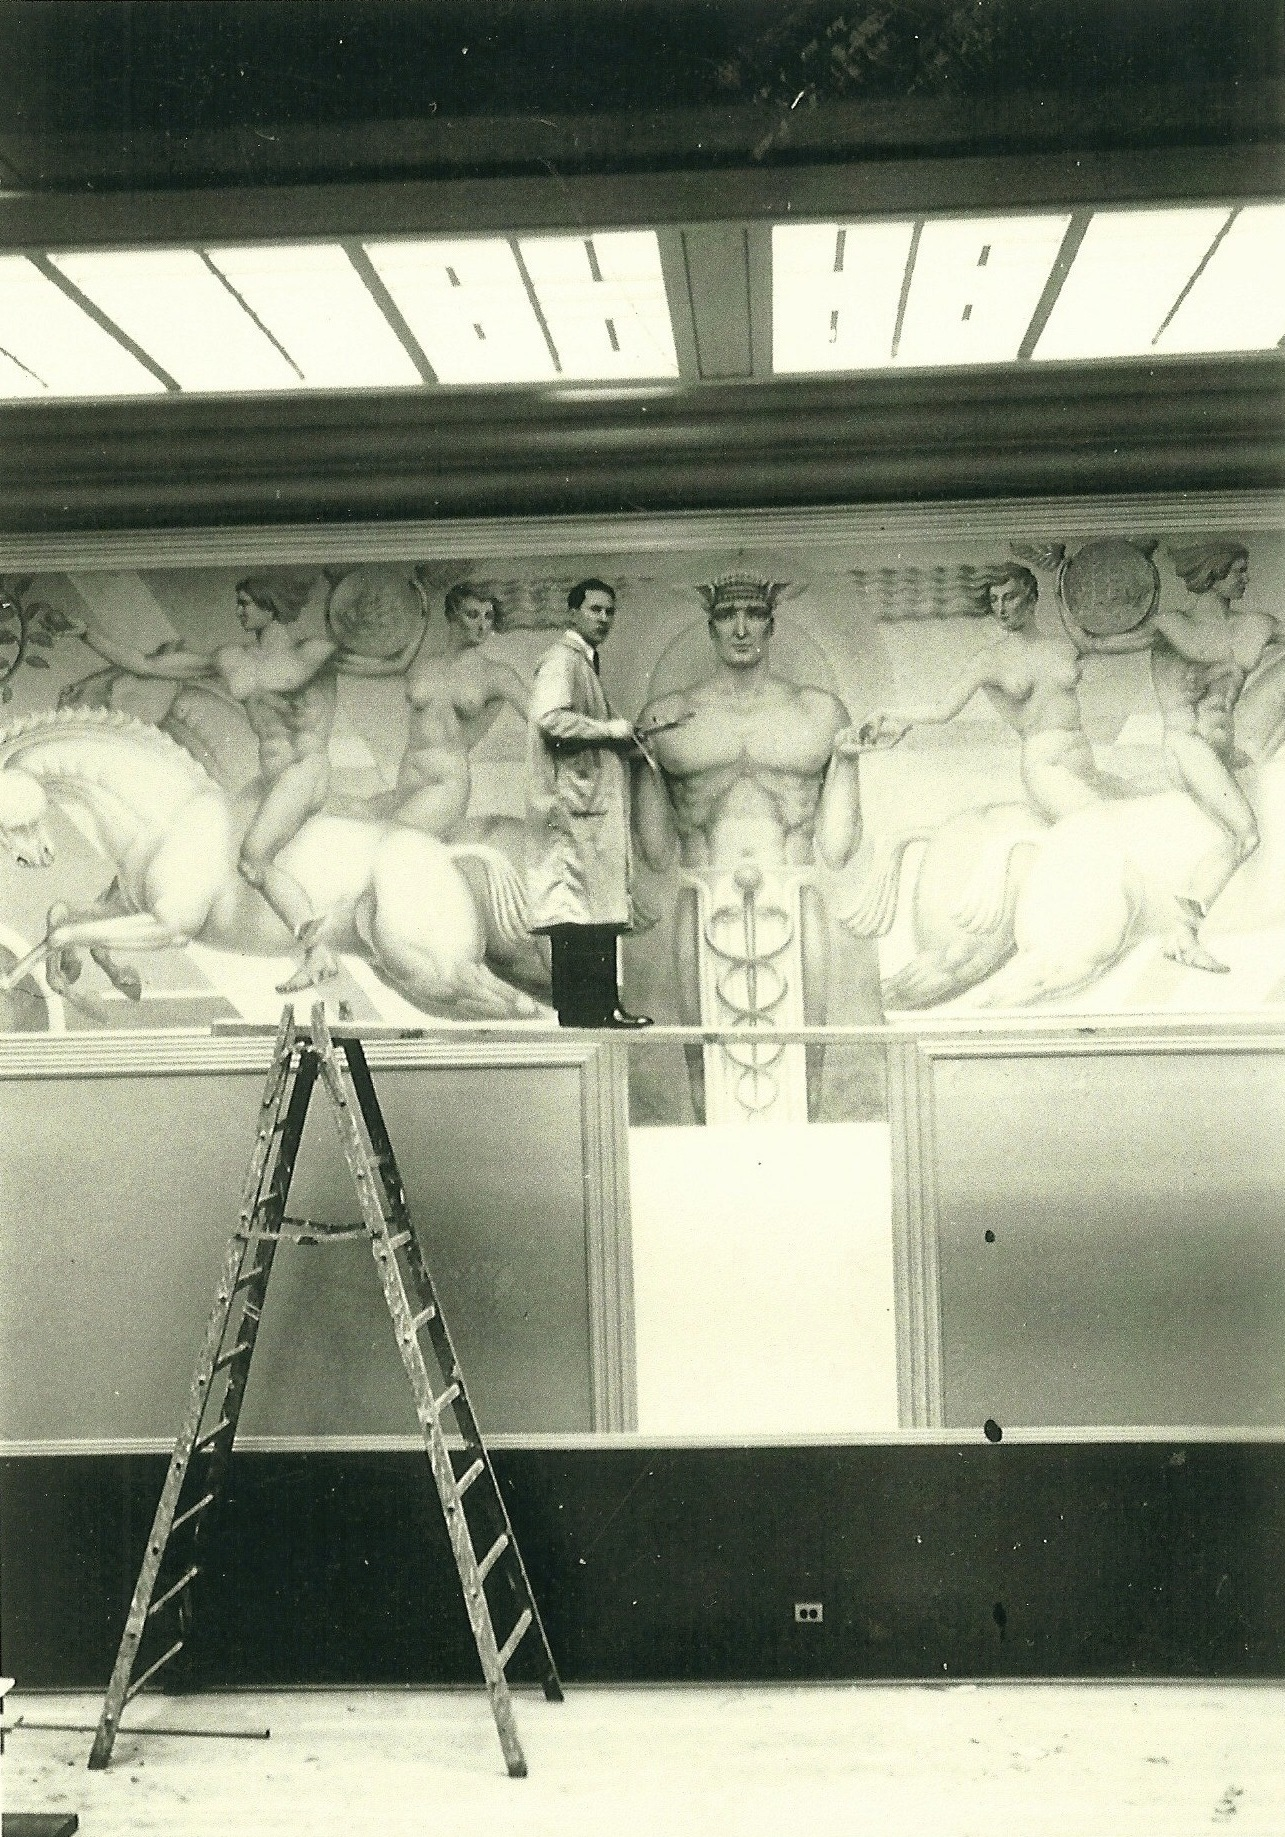 Angelo-painting-mural-for-AP-Gianini-Bank-of-America-at-the-exhibition-on-Treasure-Island-CA.jpg